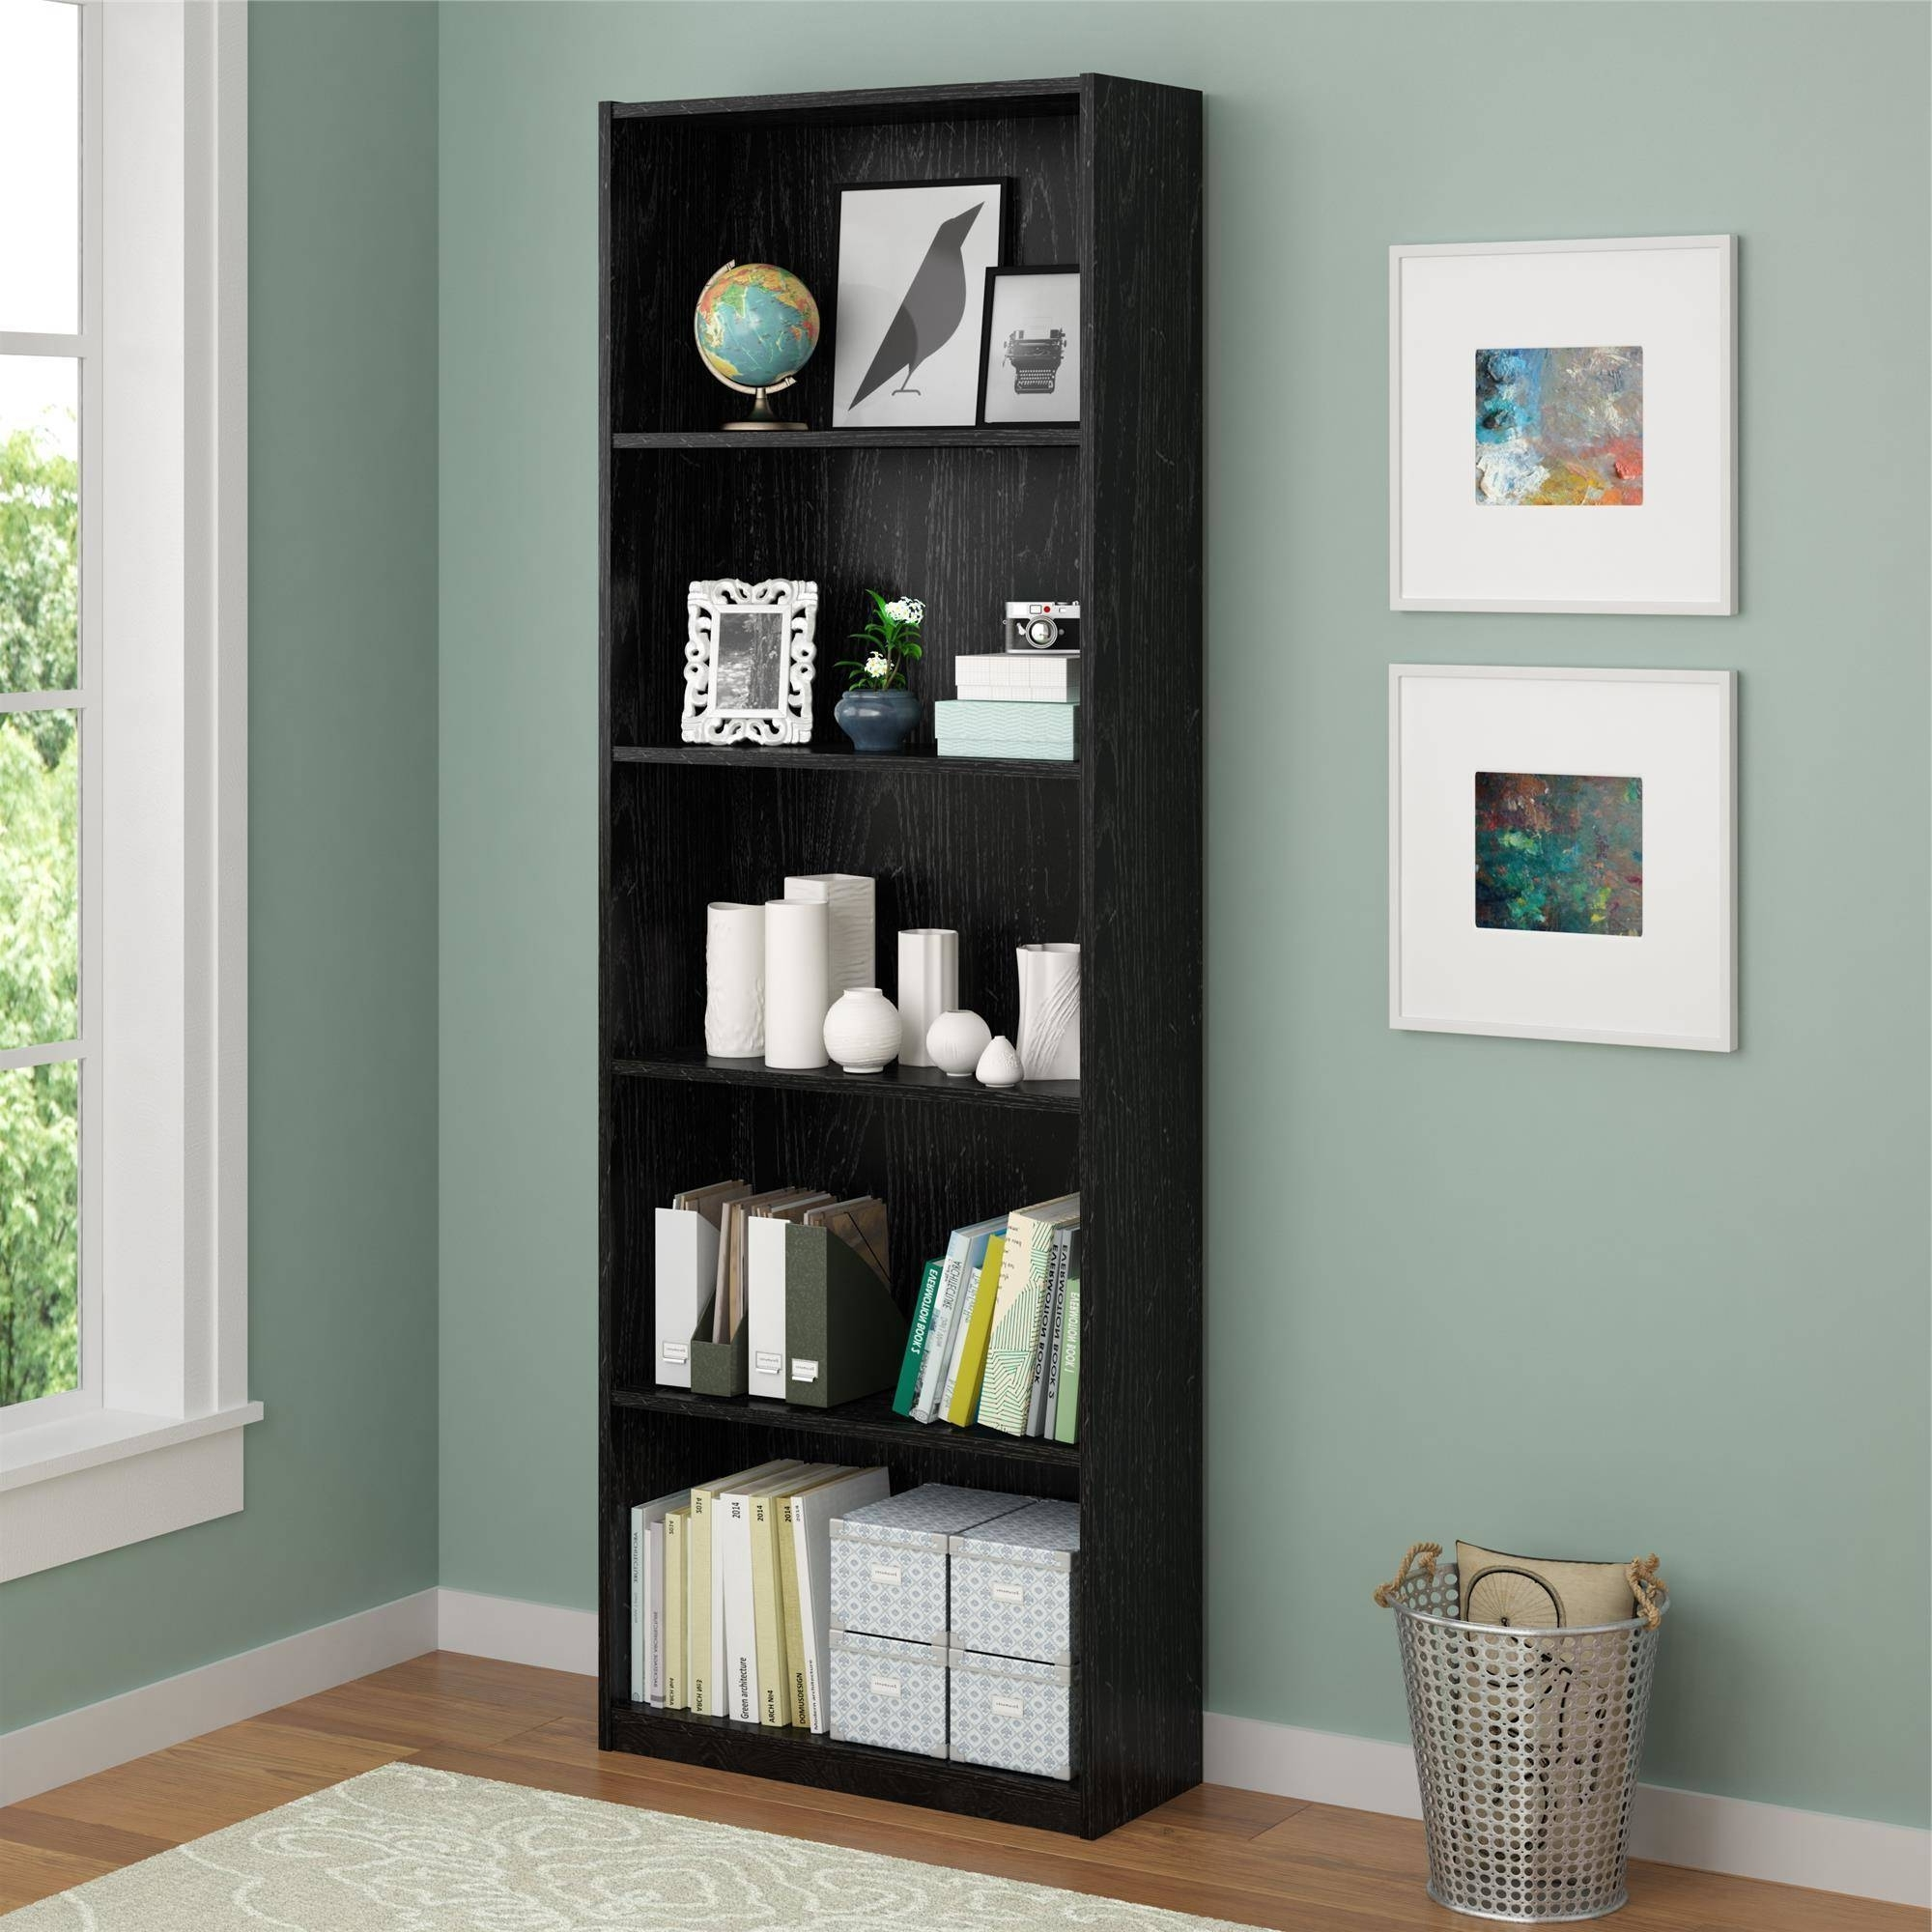 Most Recent Bookcases – Walmart Throughout 3 Shelf Bookcases Walmart (View 9 of 15)